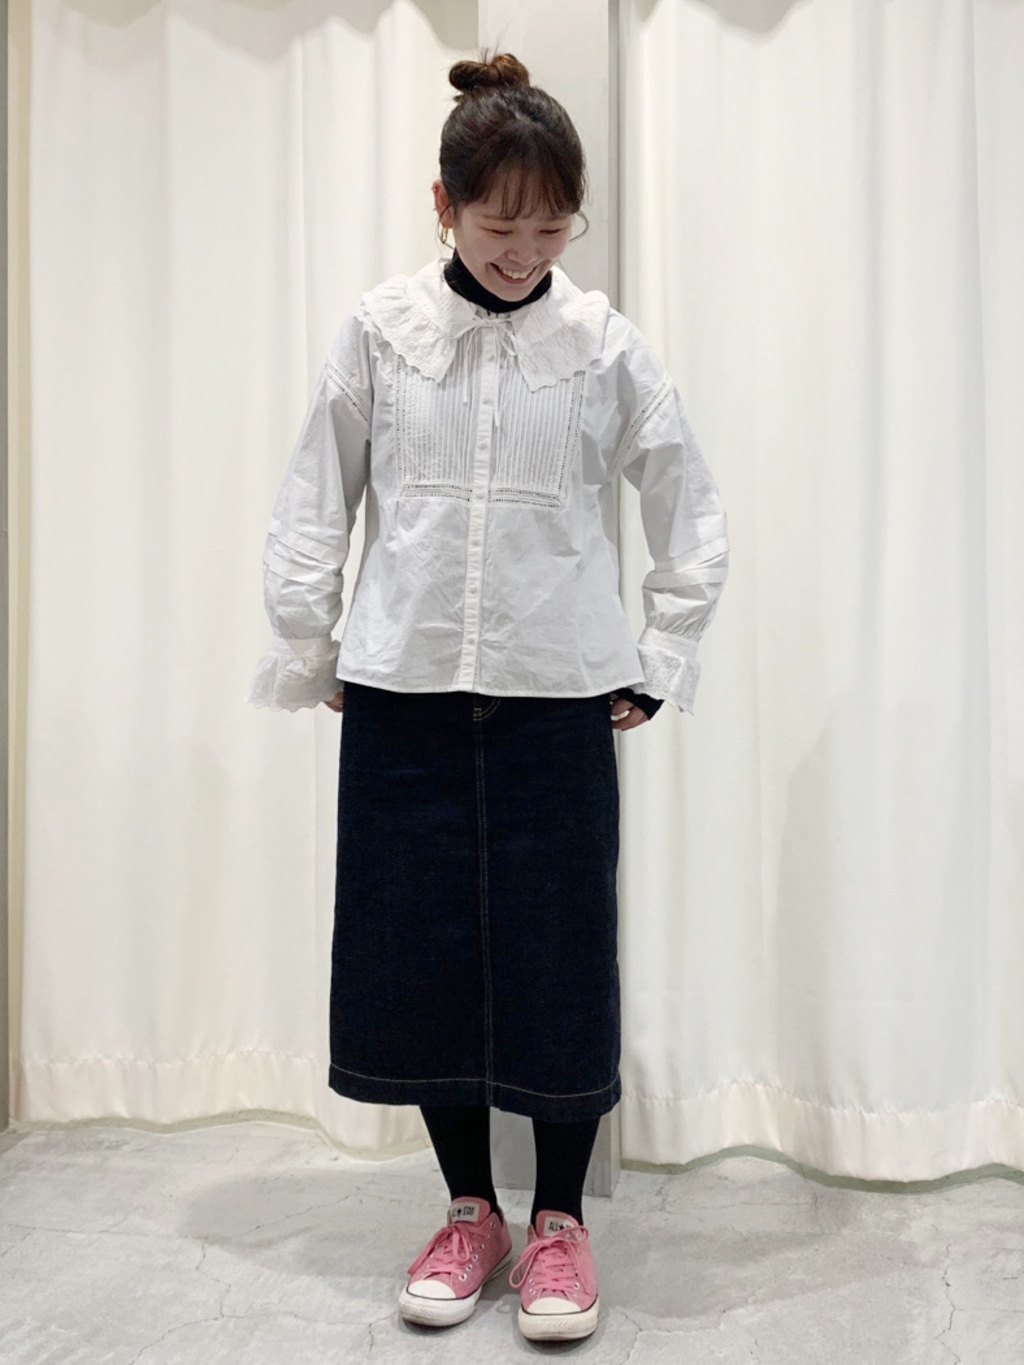 Dot and Stripes CHILD WOMAN CHILD WOMAN , PAR ICI 新宿ミロード 身長:157cm 2021.01.29